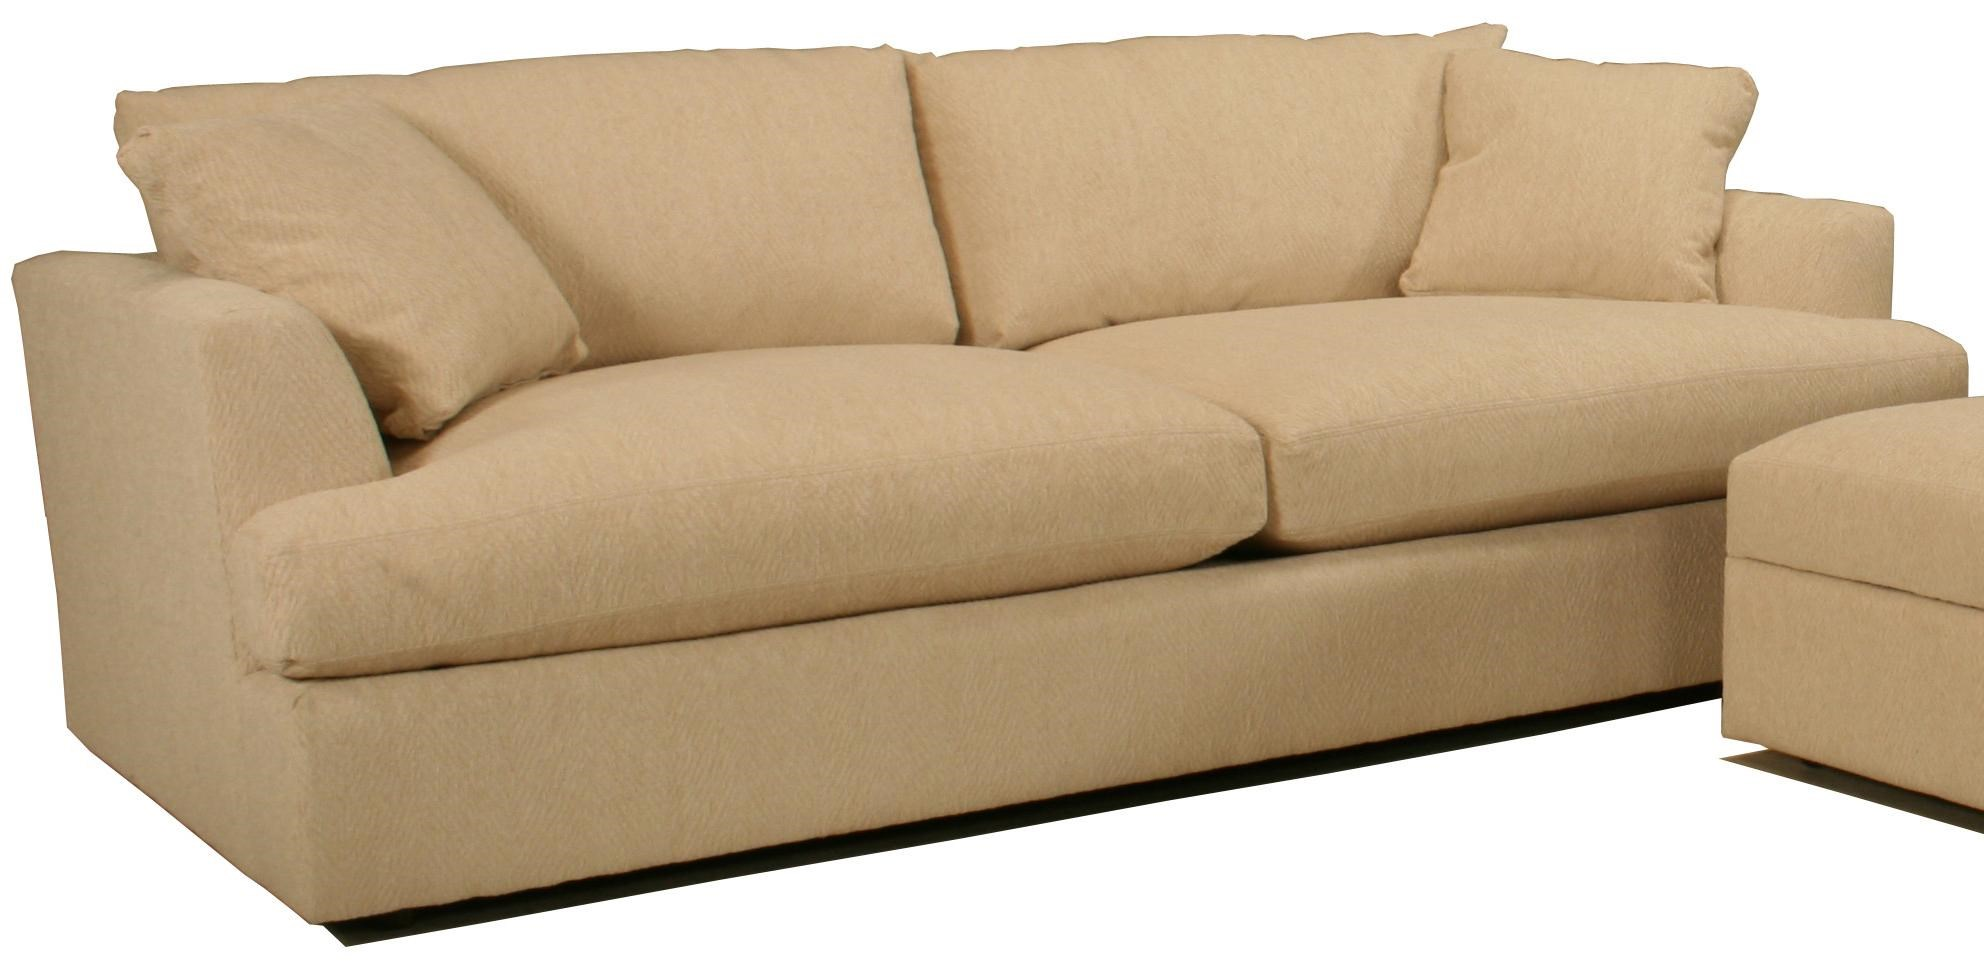 Oversized Couch Bemodern Cirrus Casual Contemporary Oversized Sofa Belfort